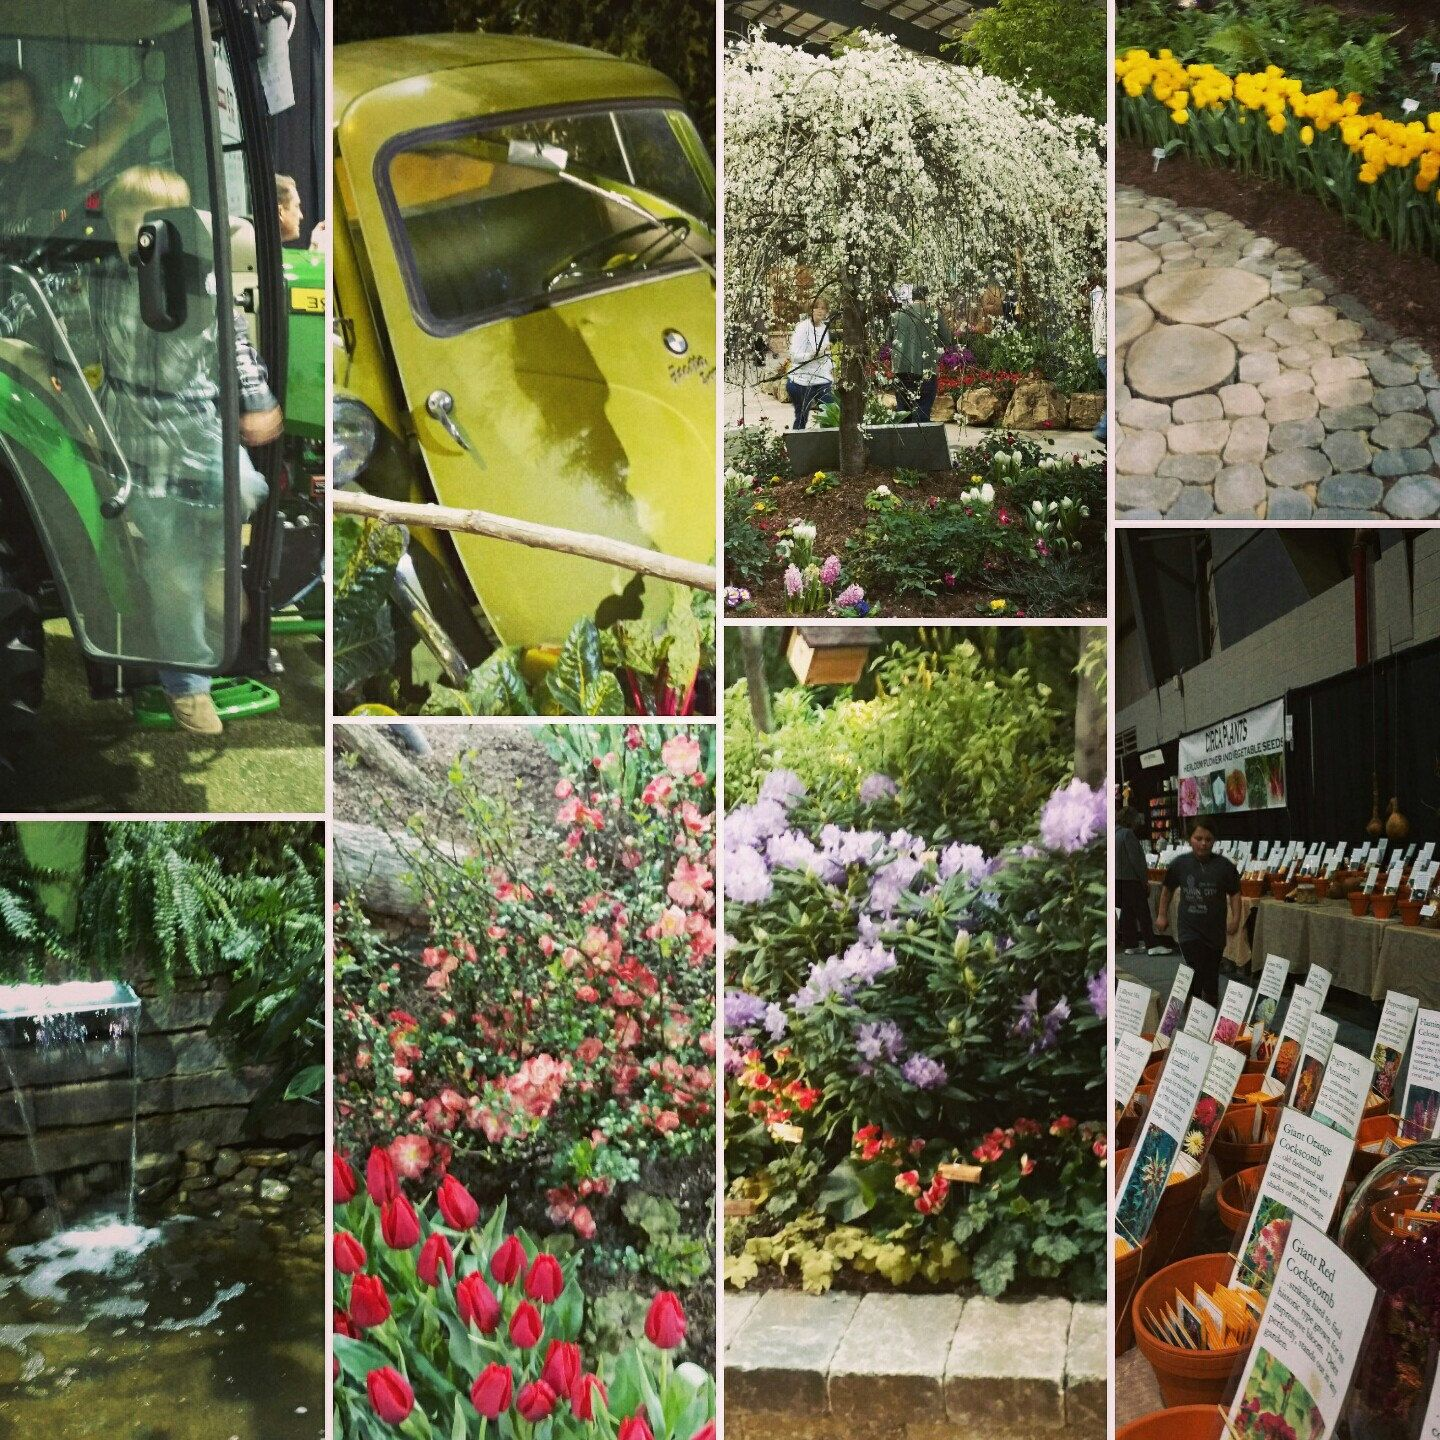 Columbus' Home & Garden Show has us so ready for spring